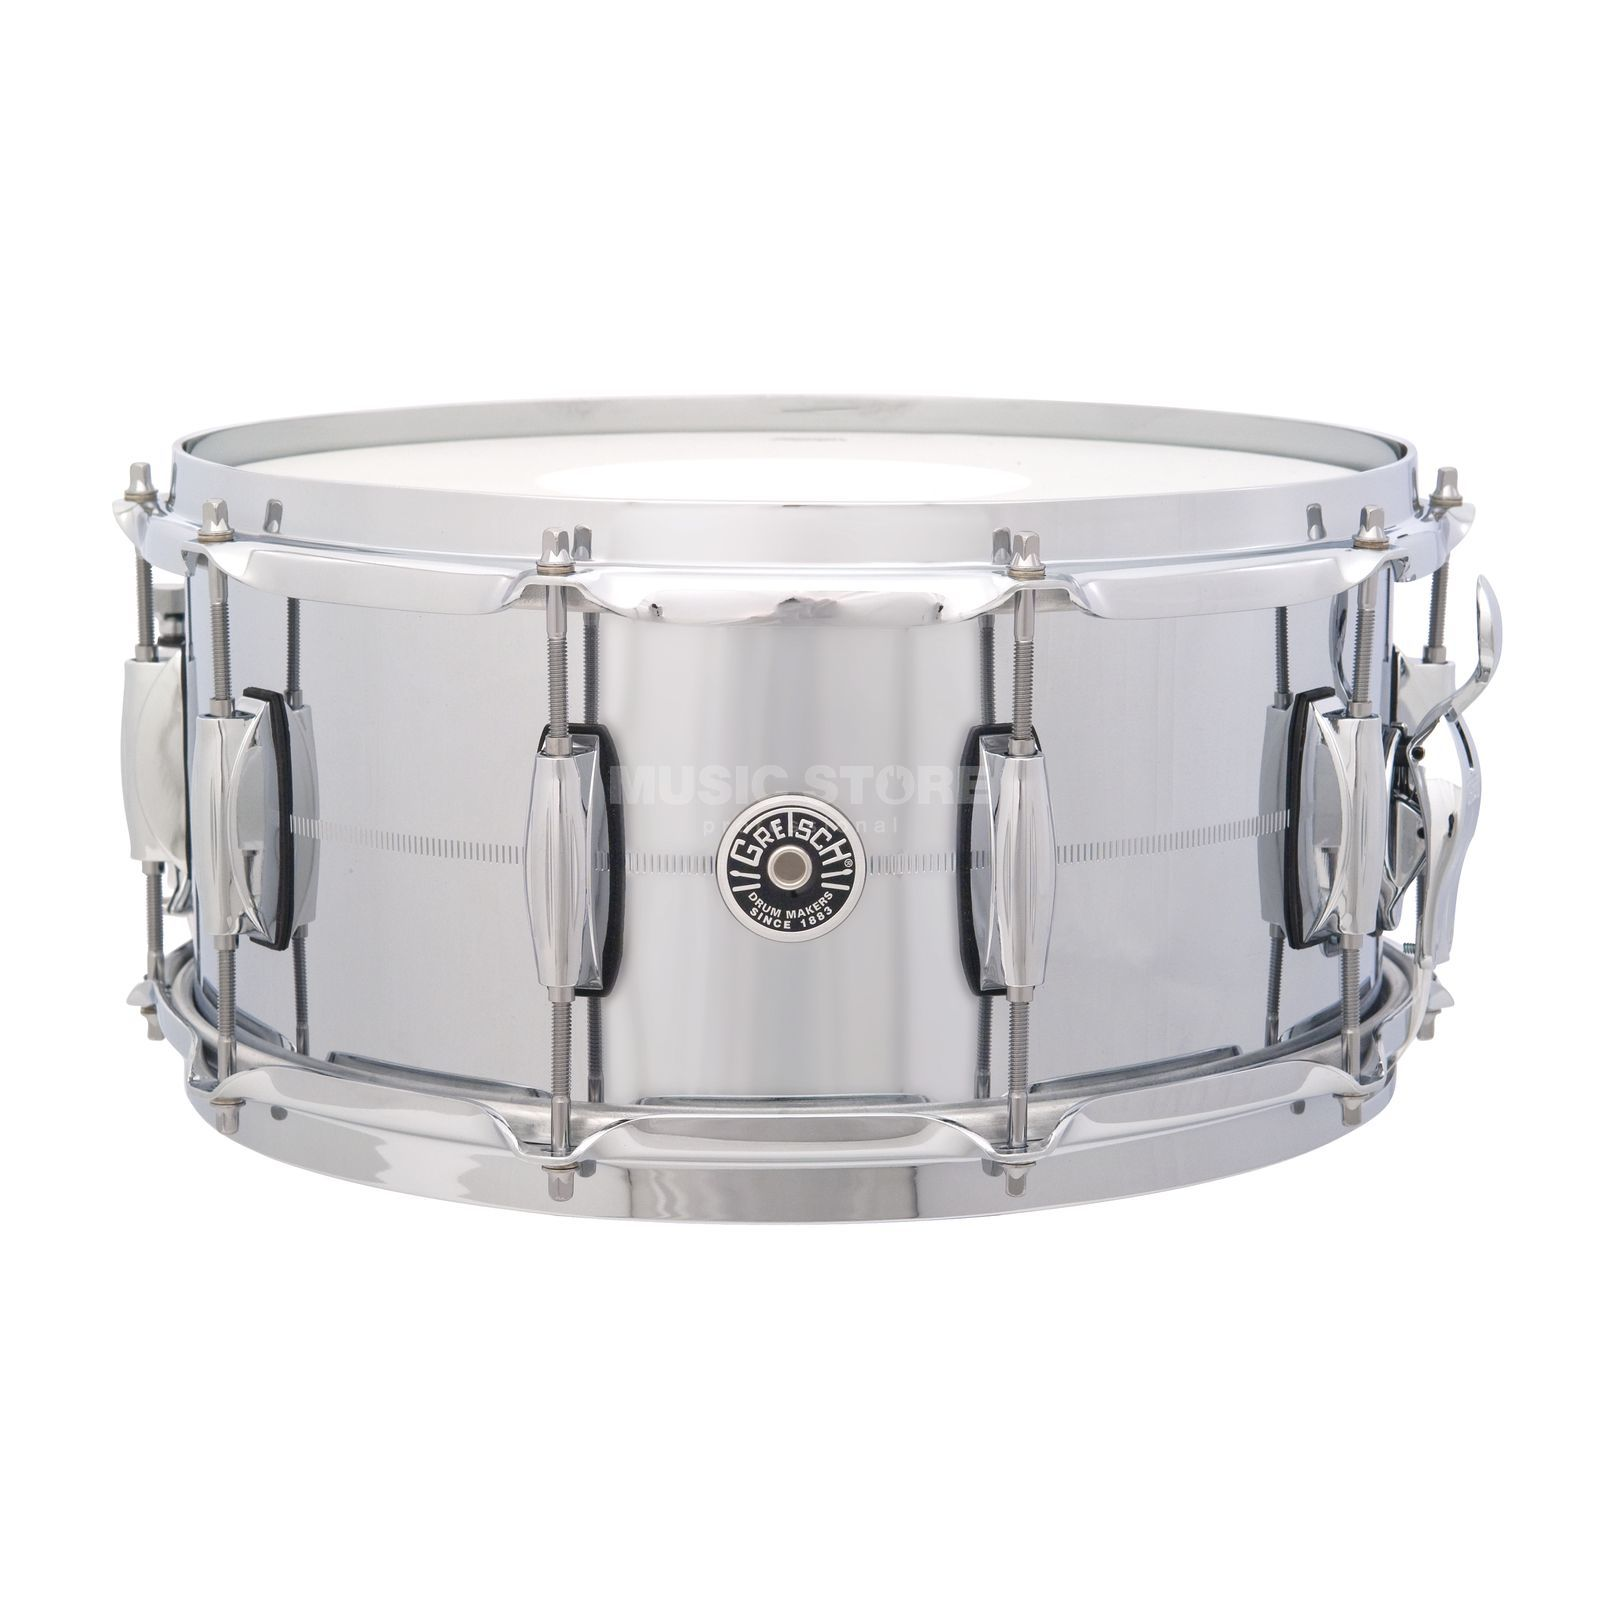 "Gretsch Brooklyn Snare 14""x6.5"", Chrome over Brass Produktbillede"